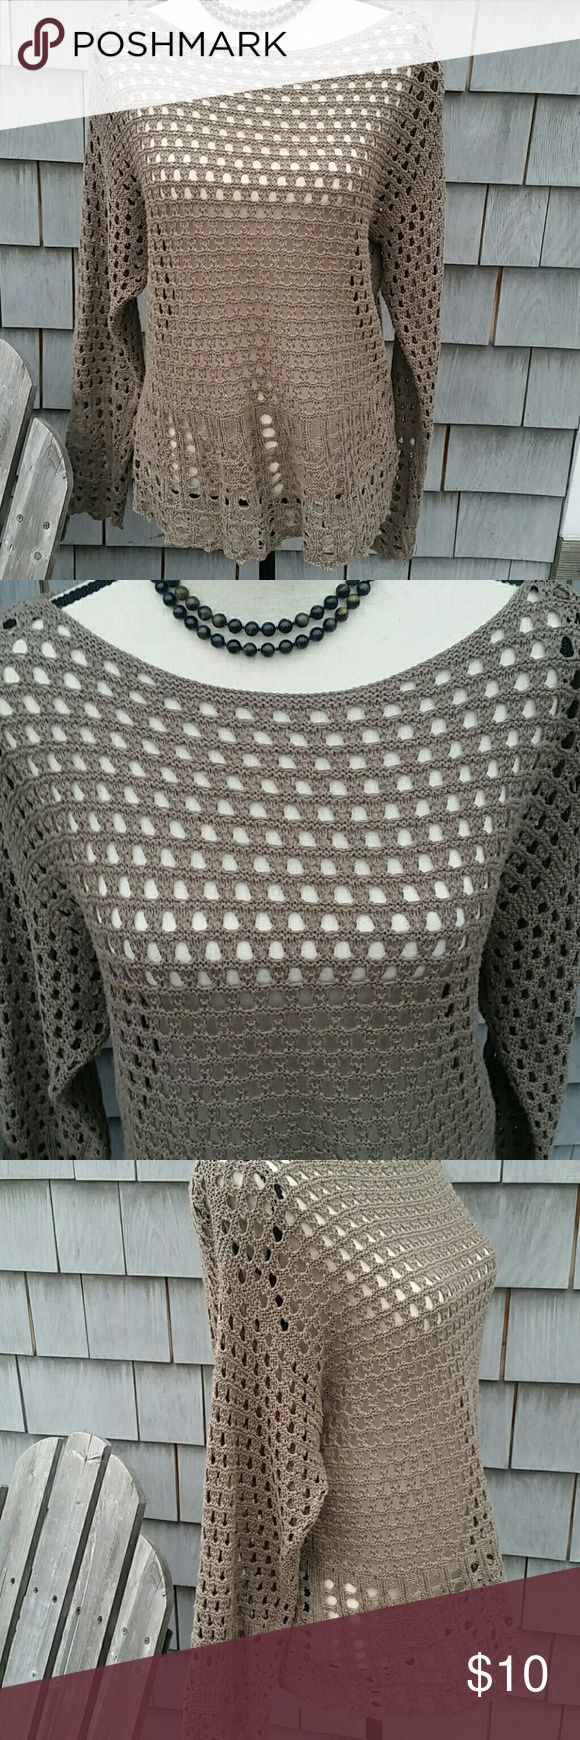 Jeanne Pierre sweater Beautiful crochet Bohemian fibe sweater looks hand made. Taupe color, no rips or snags.  Live this Jeanne pierre  Tops